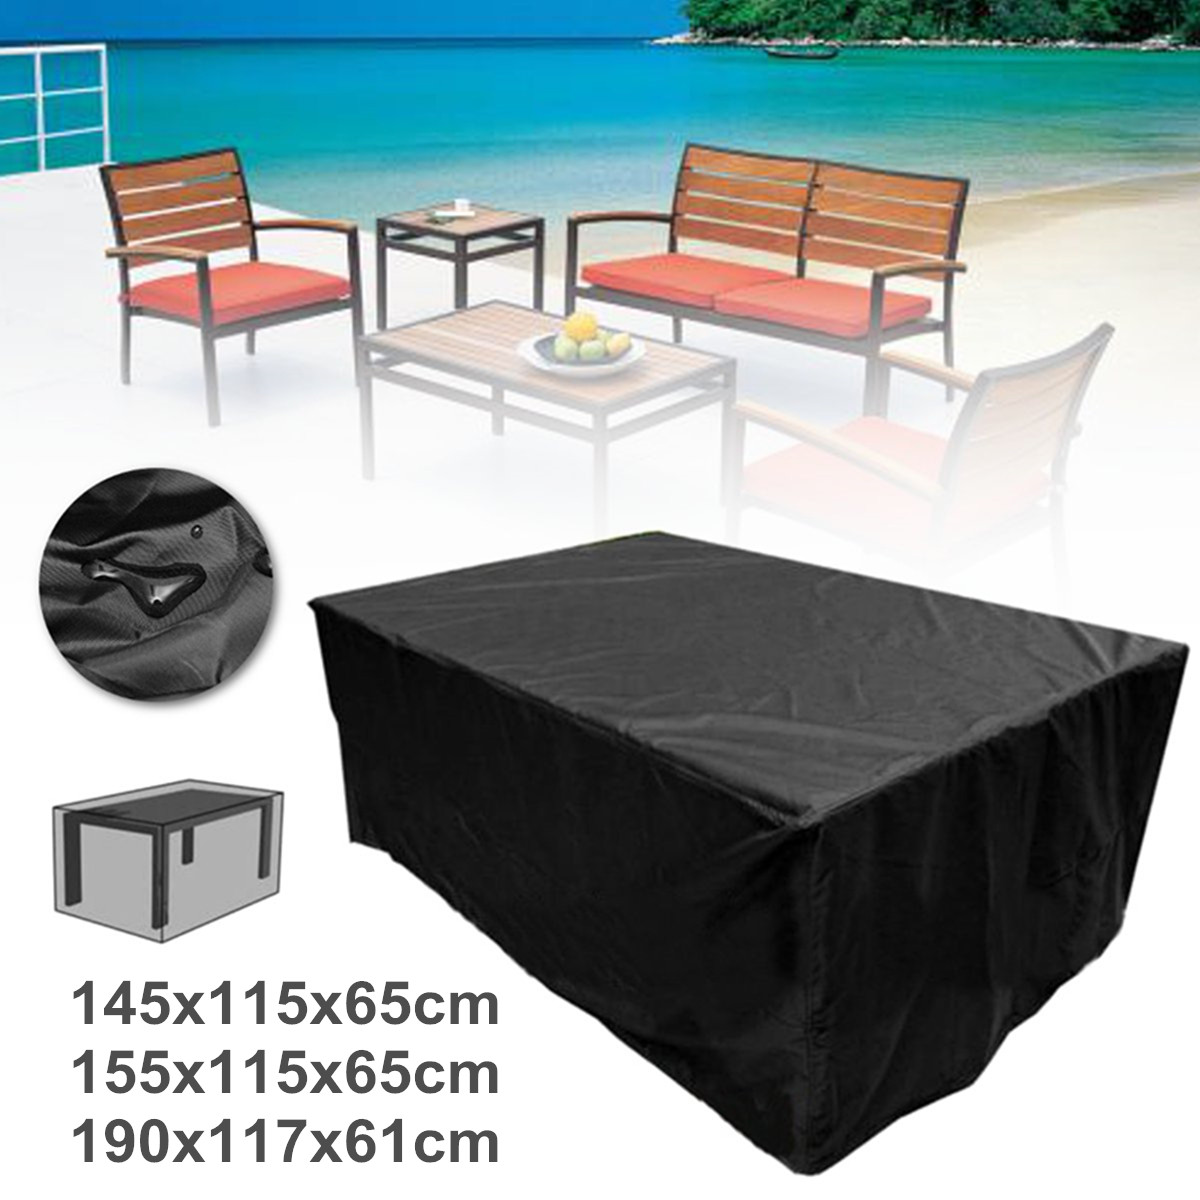 Heavy Duty Patio Rectangle Tables Chairs Sofa Waterproof Outdoor Furniture Cover